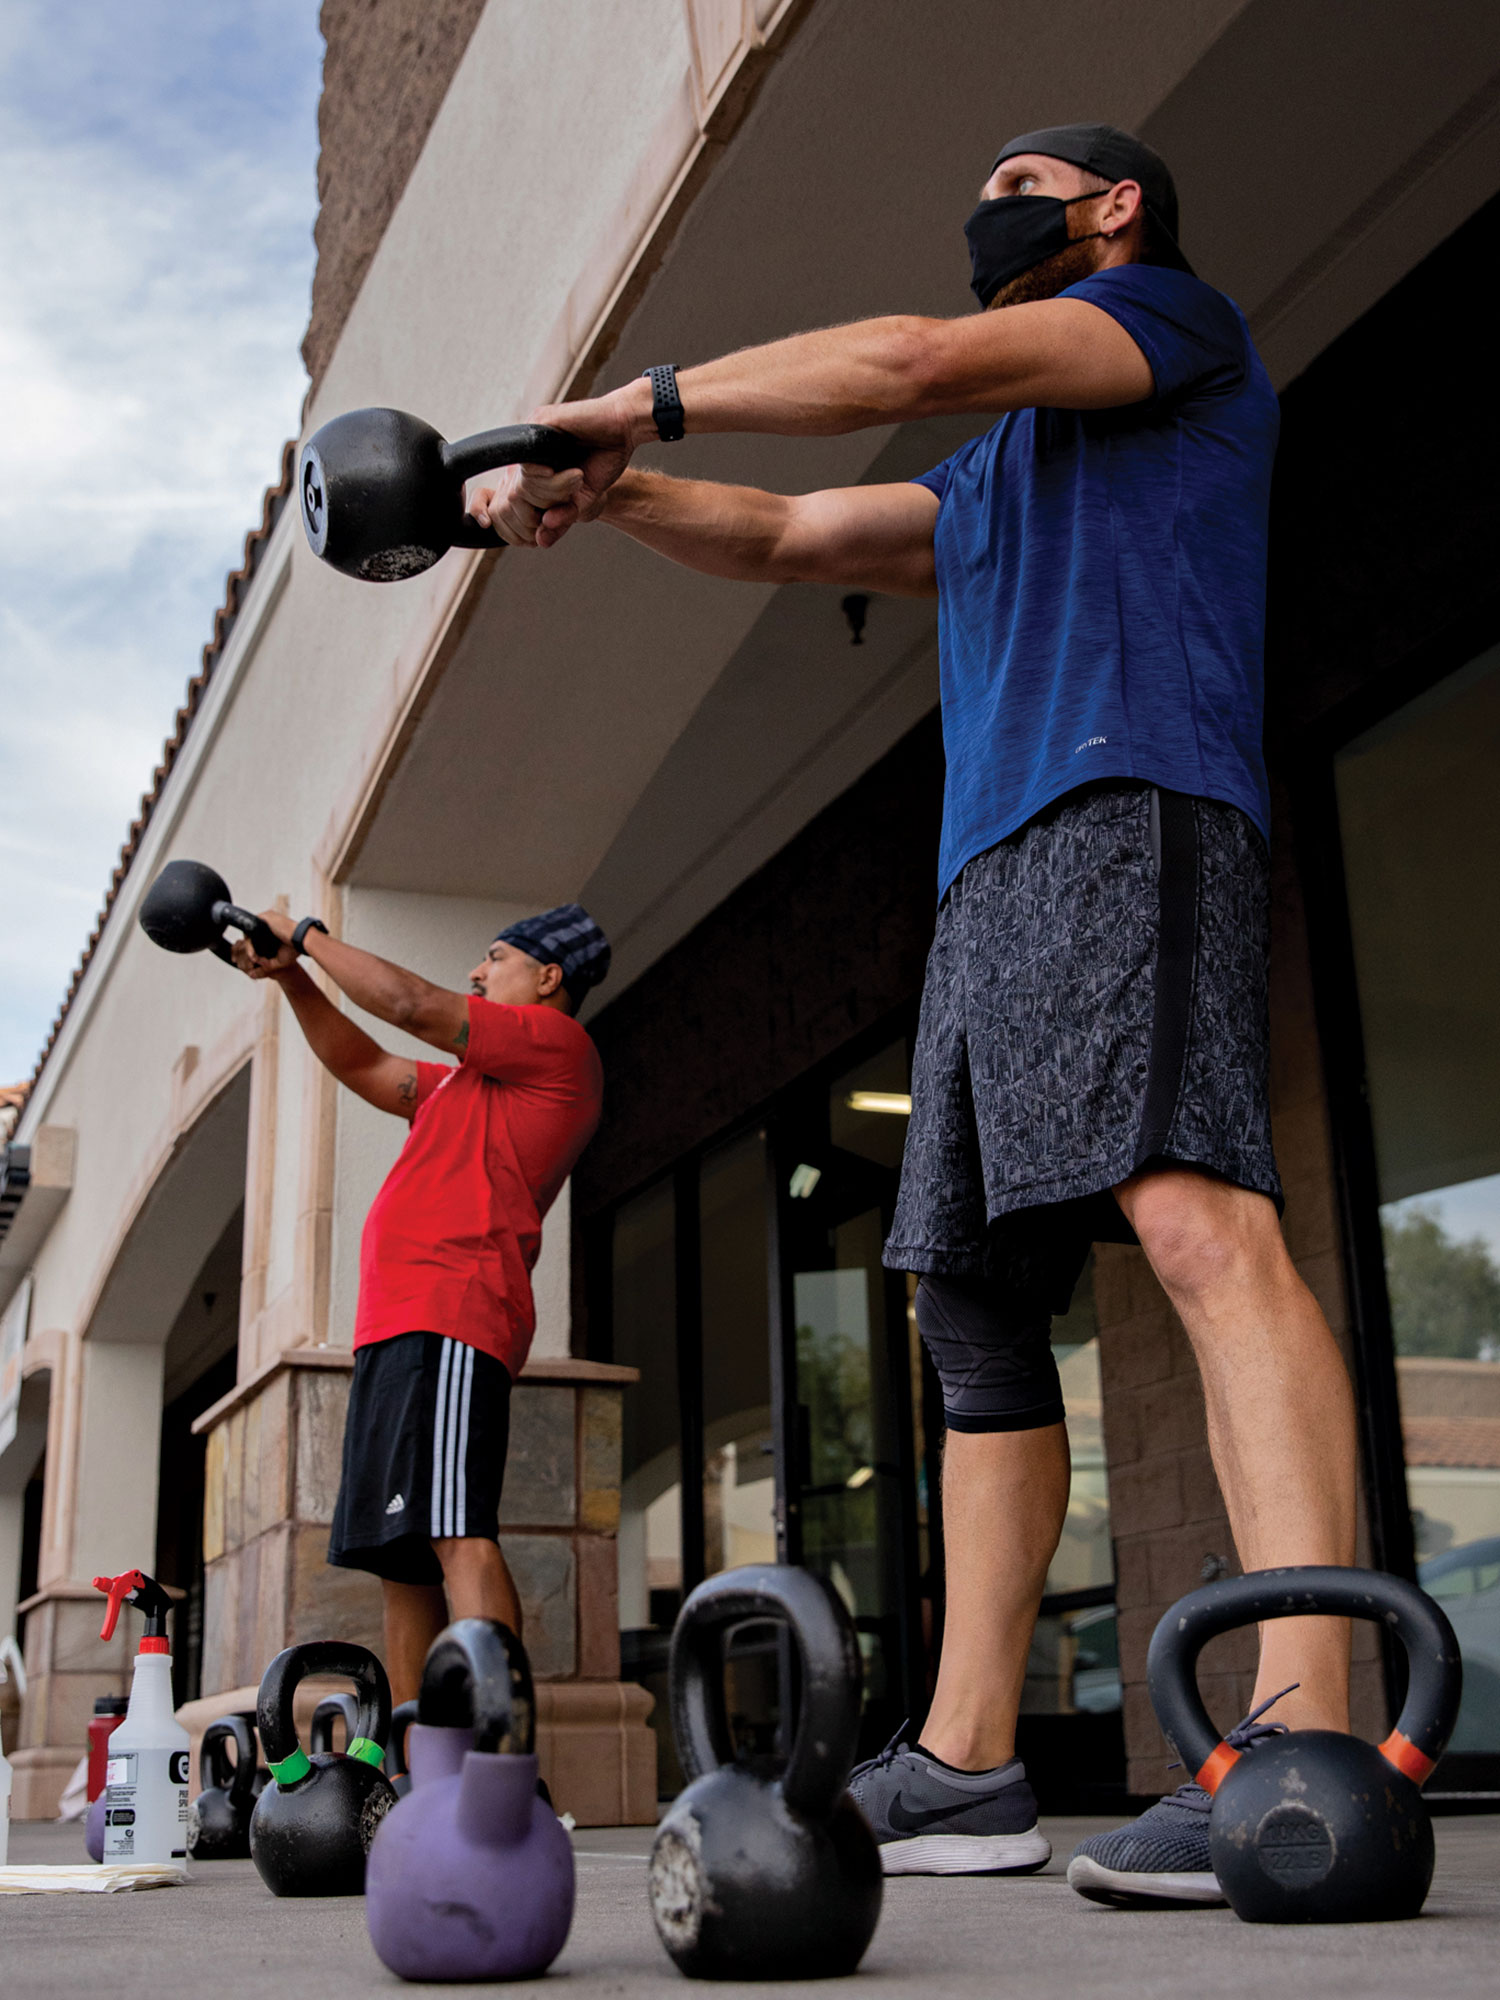 TruHit clients enjoy open-air workouts in Ahwatukee.; Photo by Samantha Chow